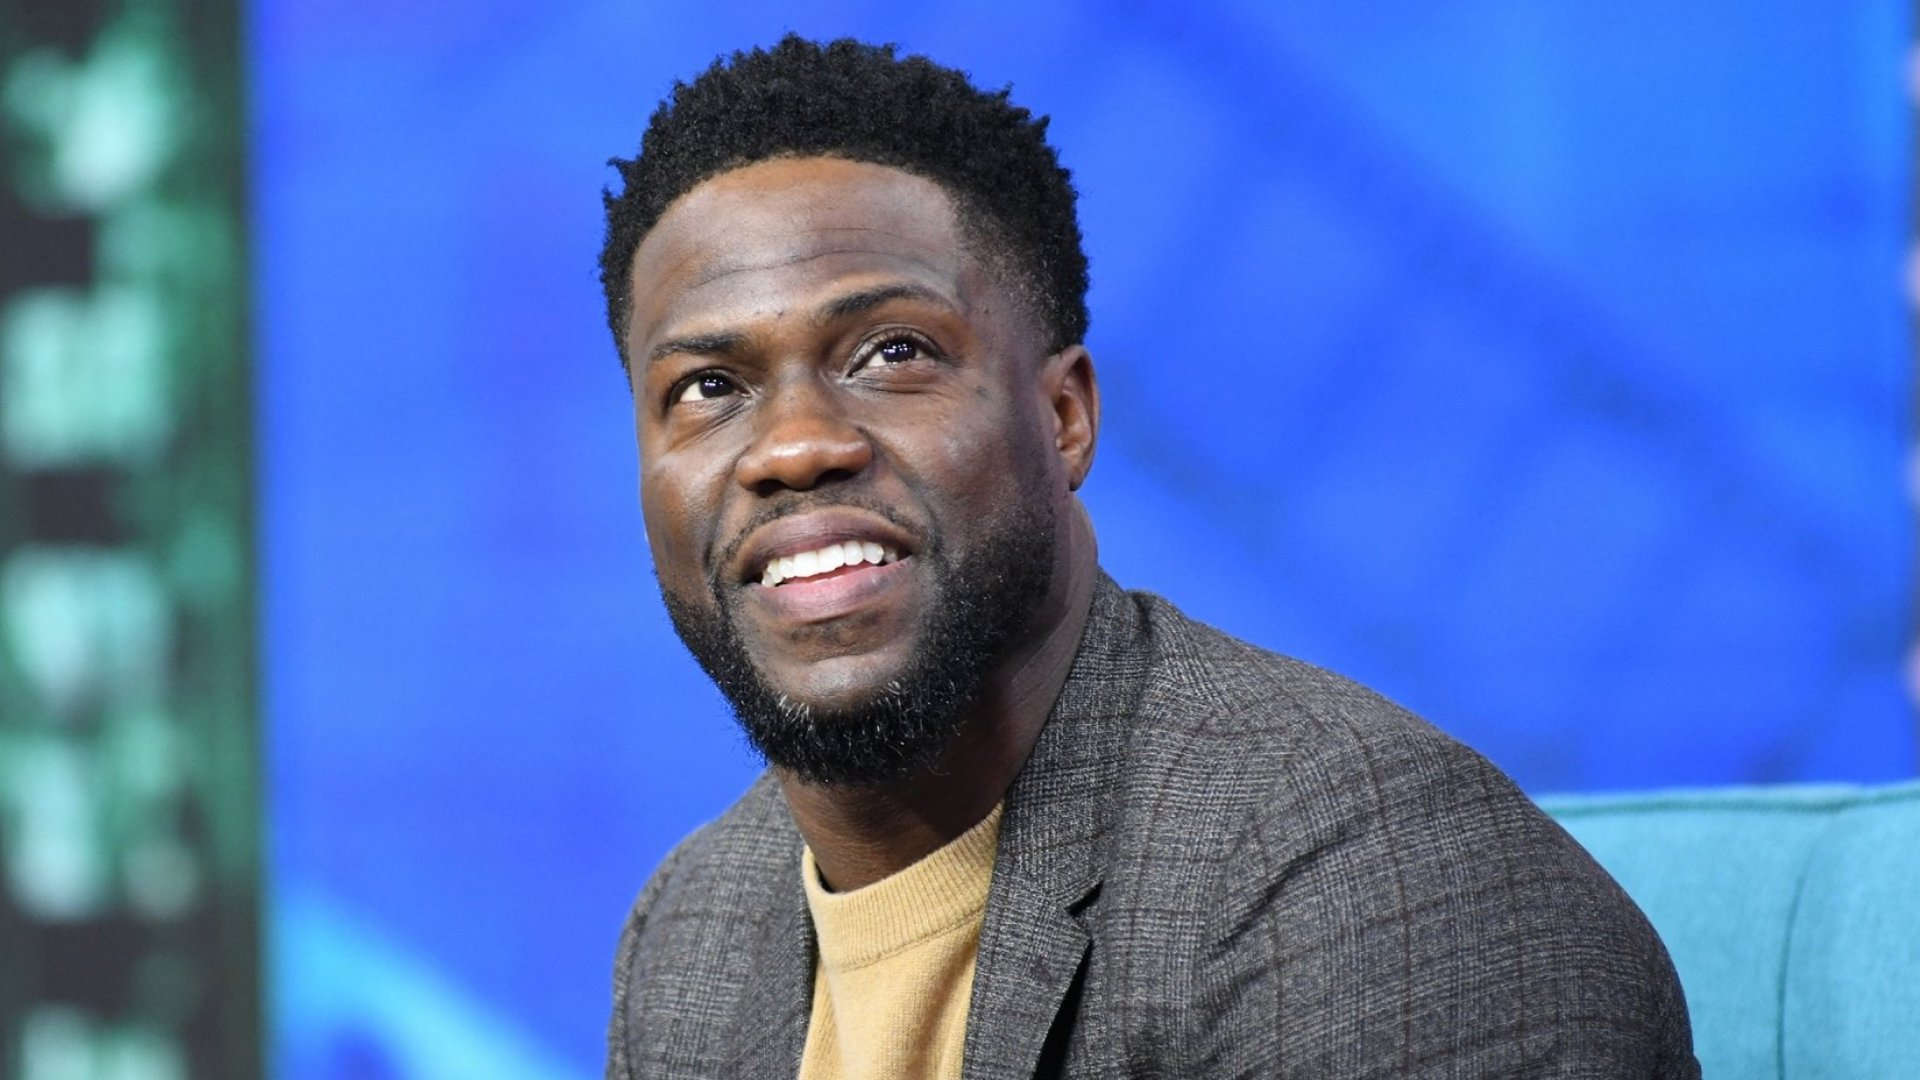 Kevin Hart Said 1 Thing Separates Successful People from Unsuccessful Ones